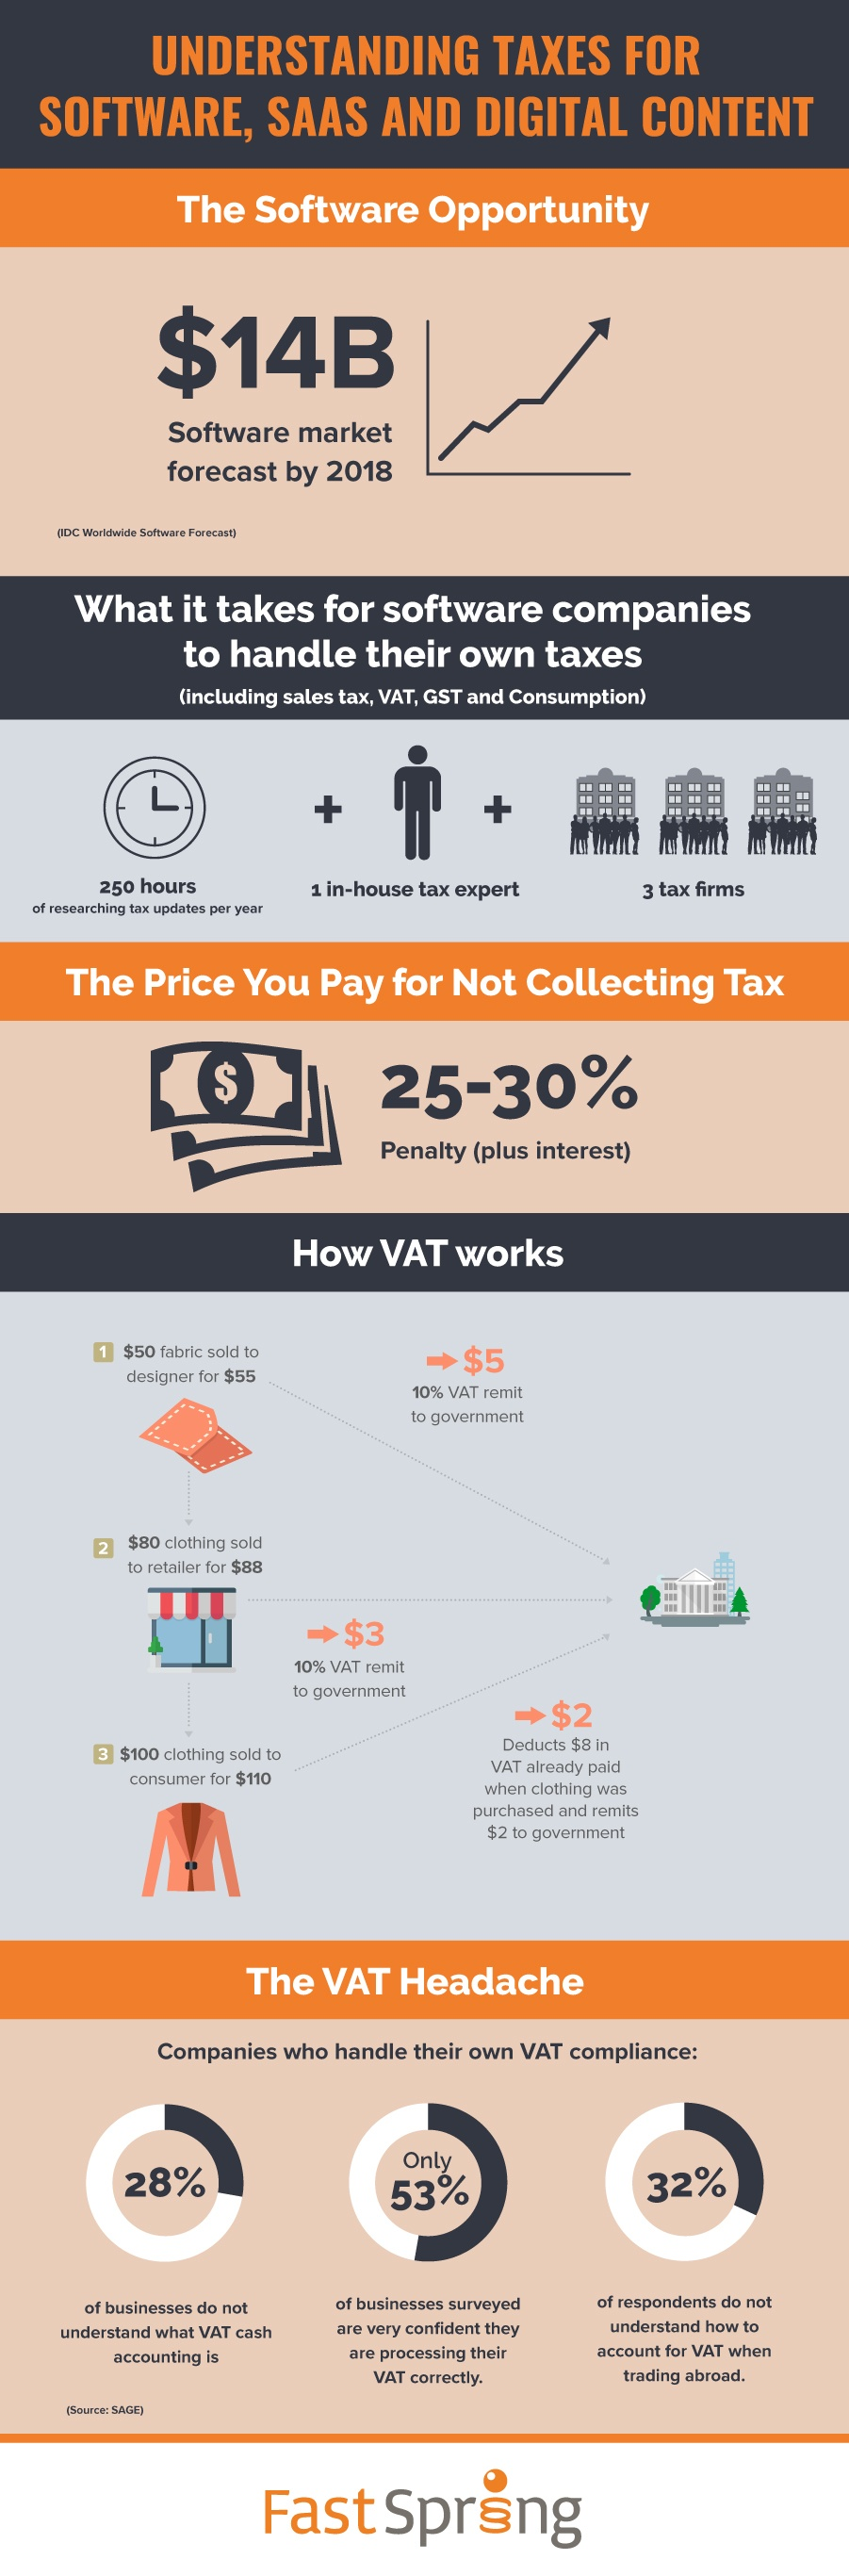 FastSpring_Tax_Infographic.jpg